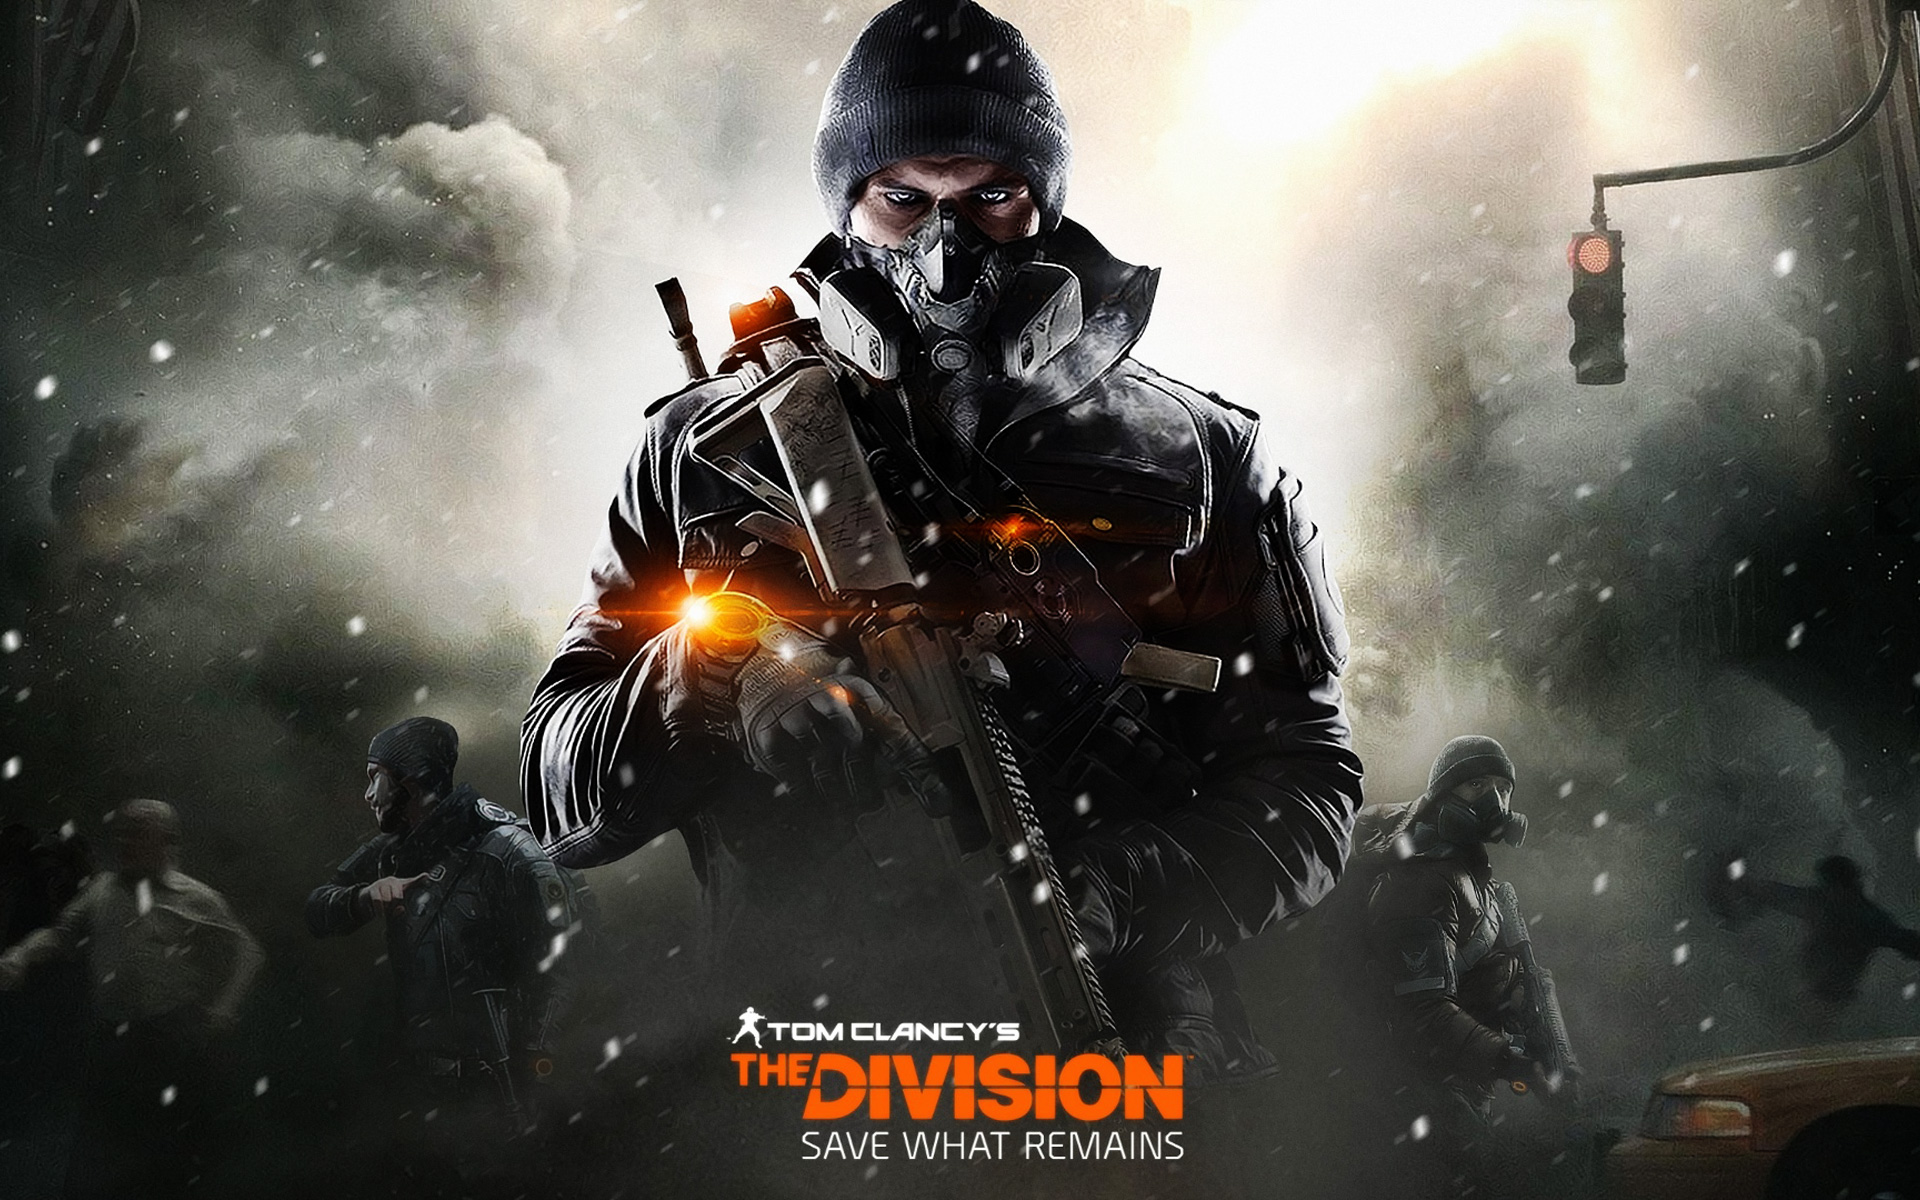 Free The Division Wallpaper in 1920x1200